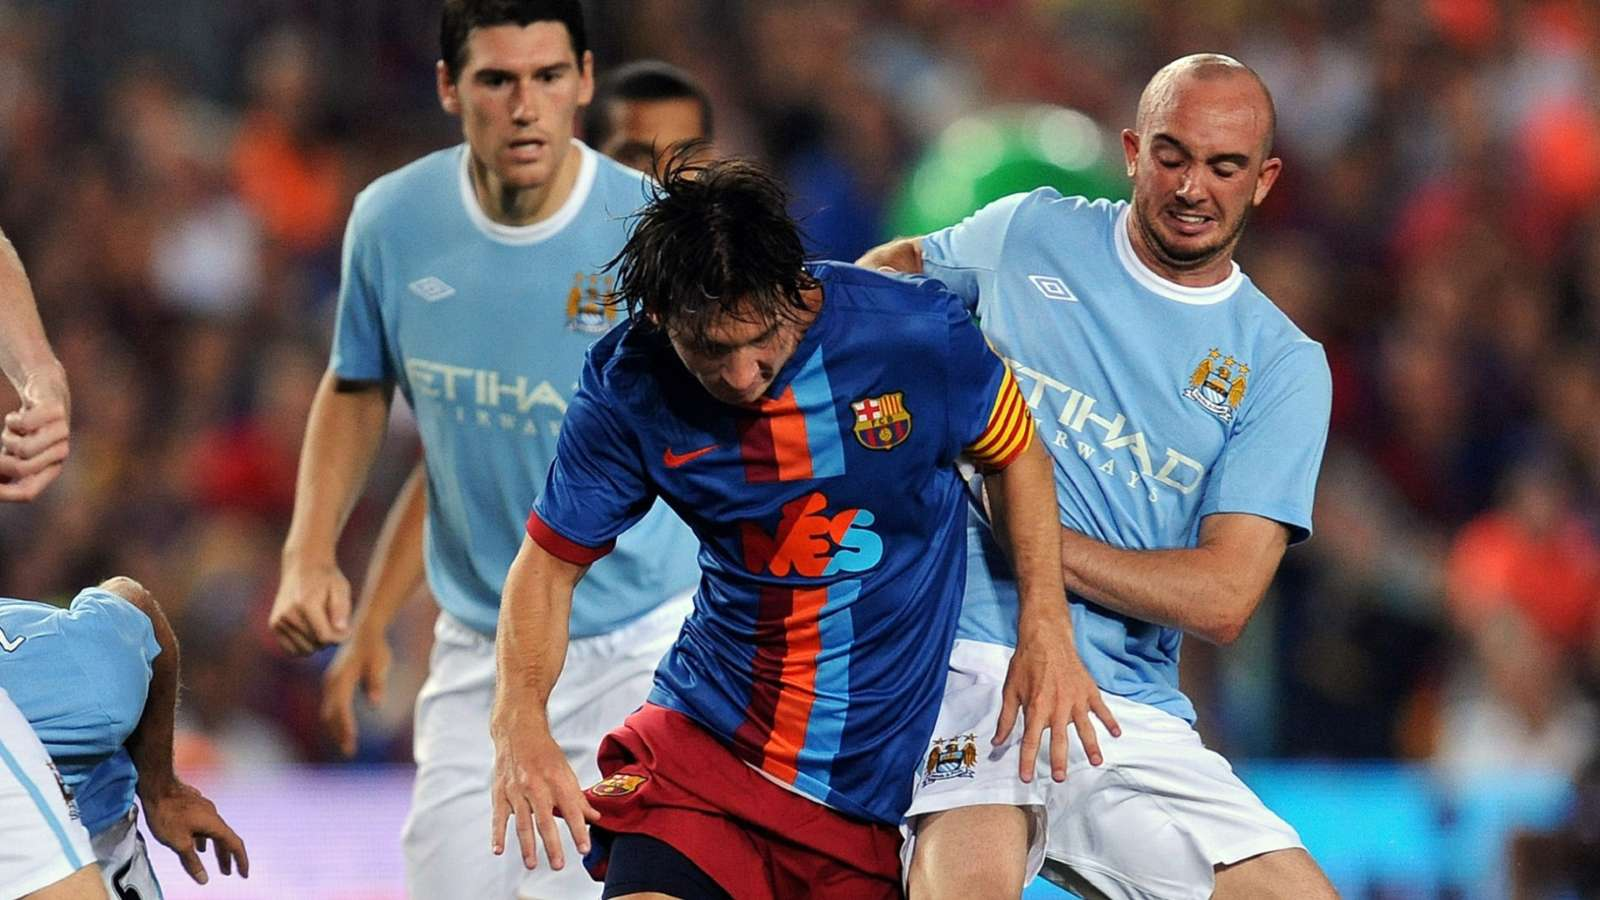 Messi Ireland Barcelona Manchester City 2009